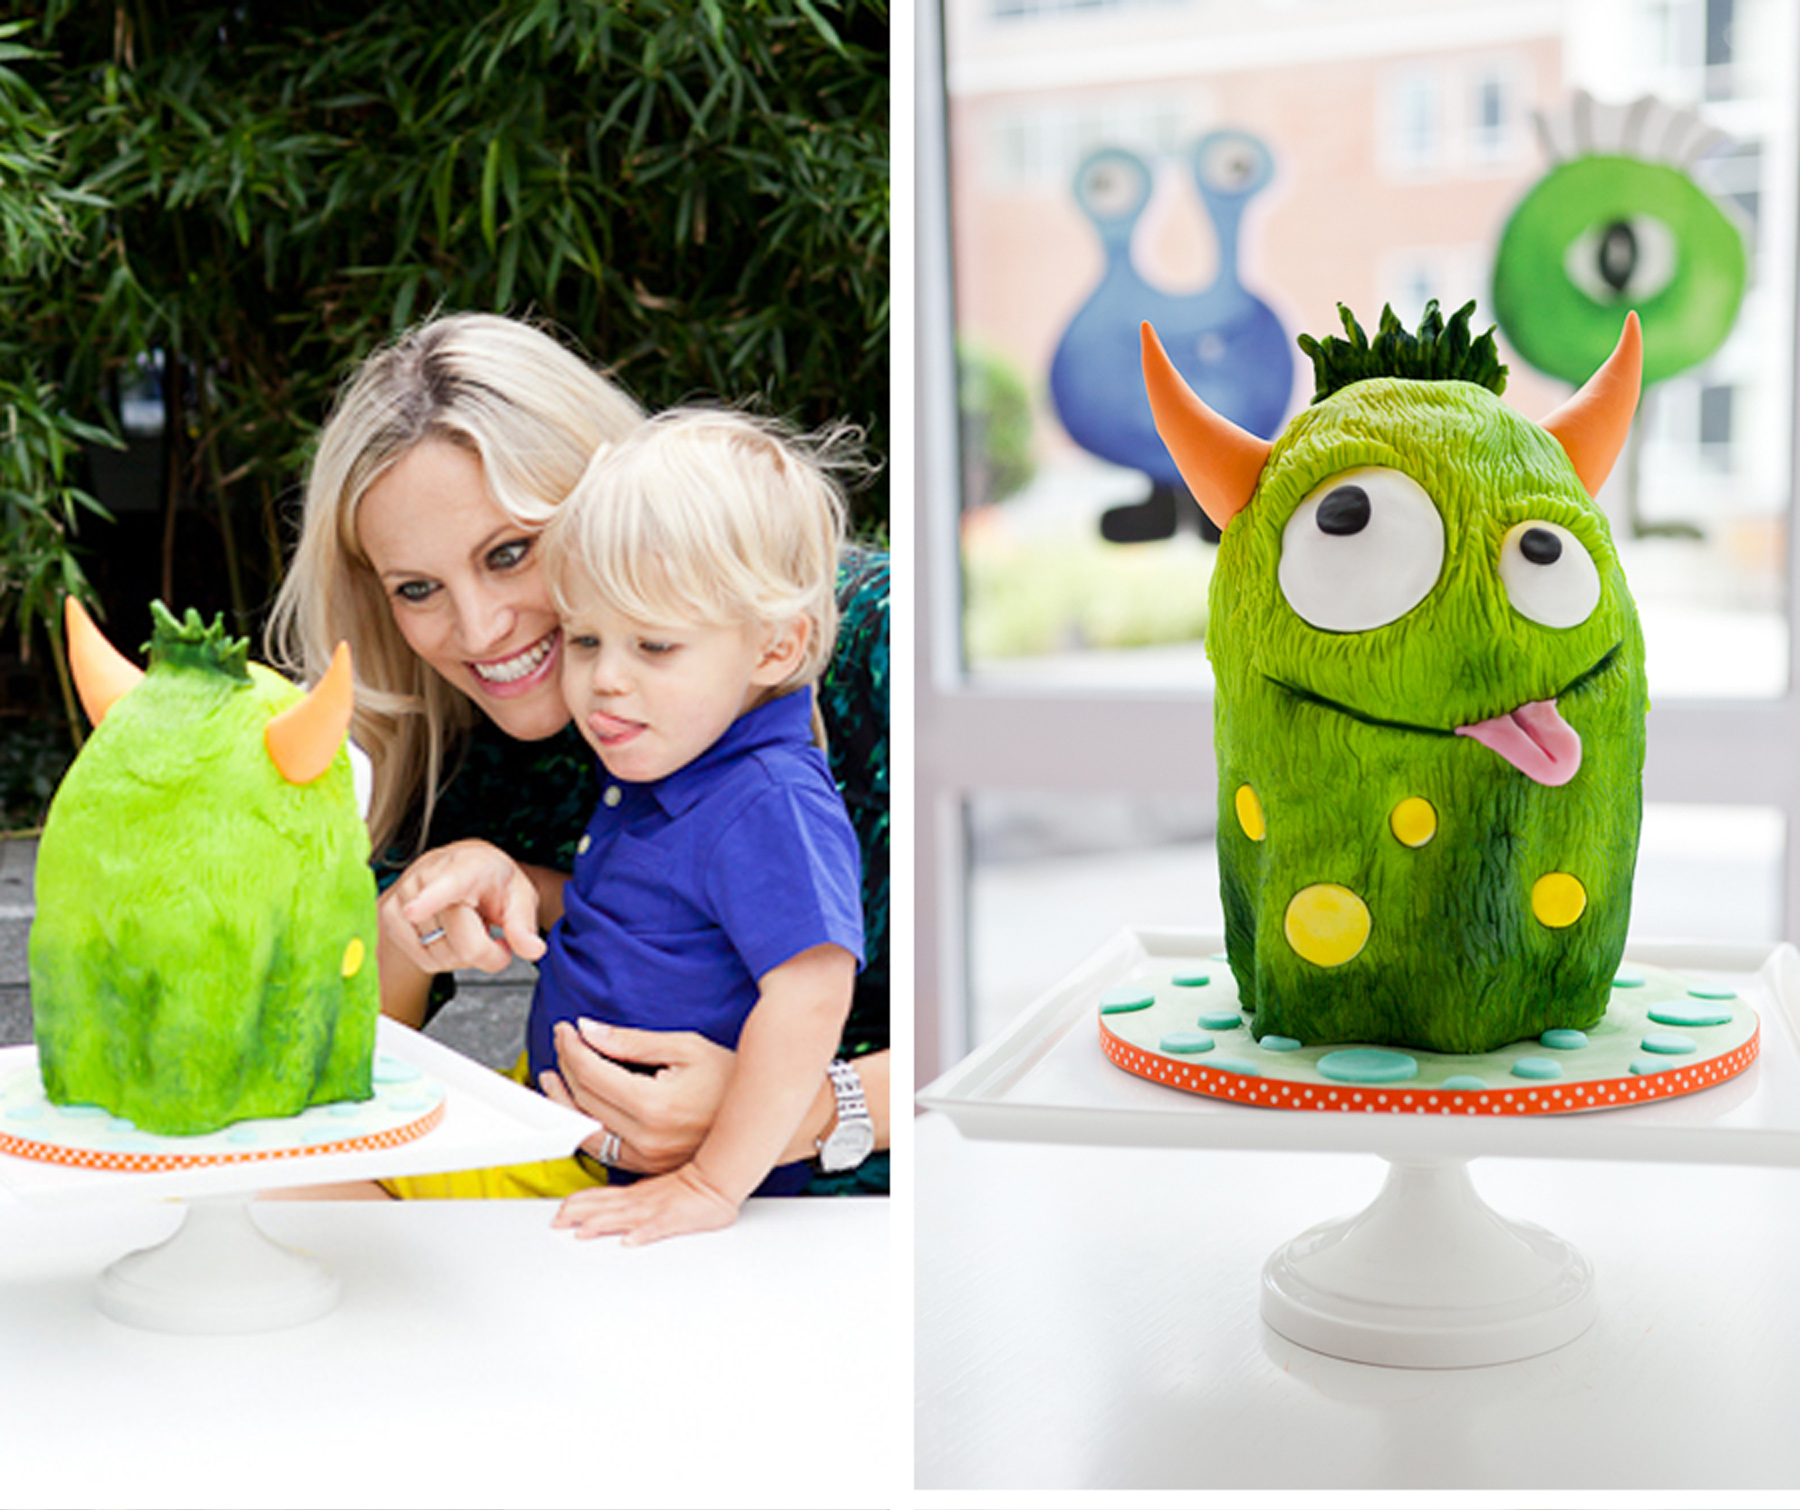 V Our Muse Monster Themed Kids Birthday Party Part - Childrens birthday parties north york